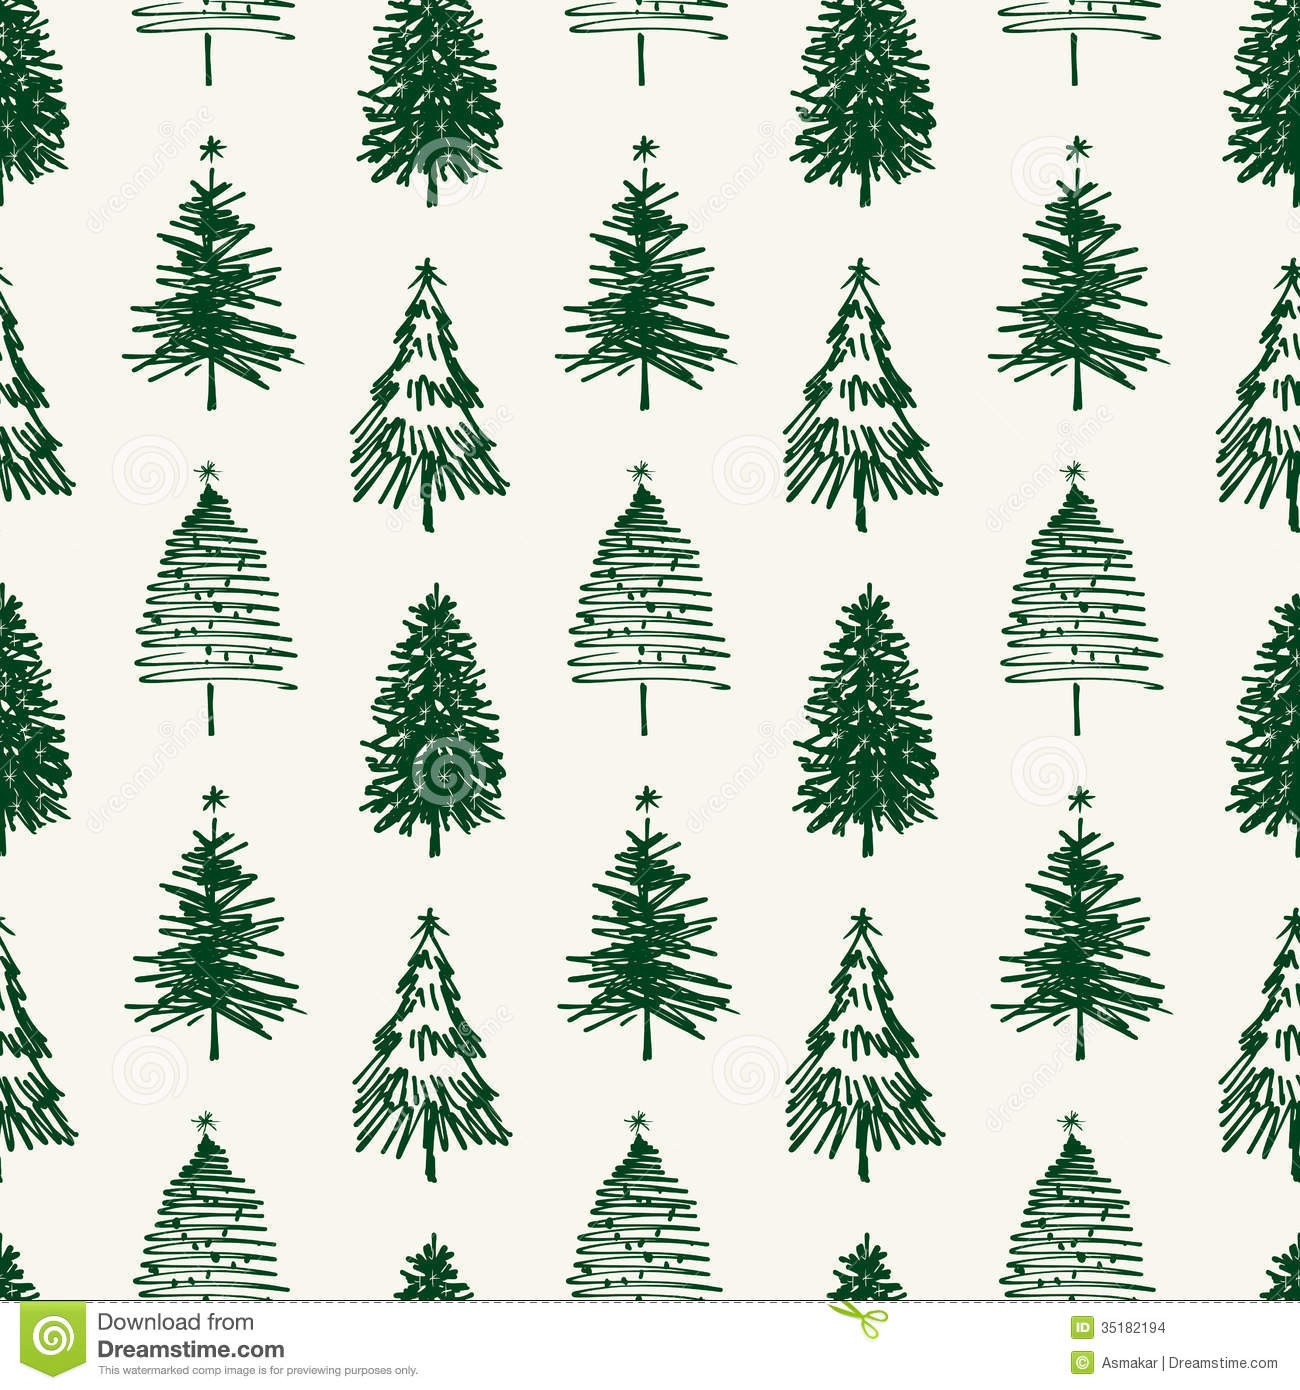 Christmas Tree Pattern Inspirational Pattern Of Christmas Trees Stock Vector Illustration Of Of Great 46 Images Christmas Tree Pattern